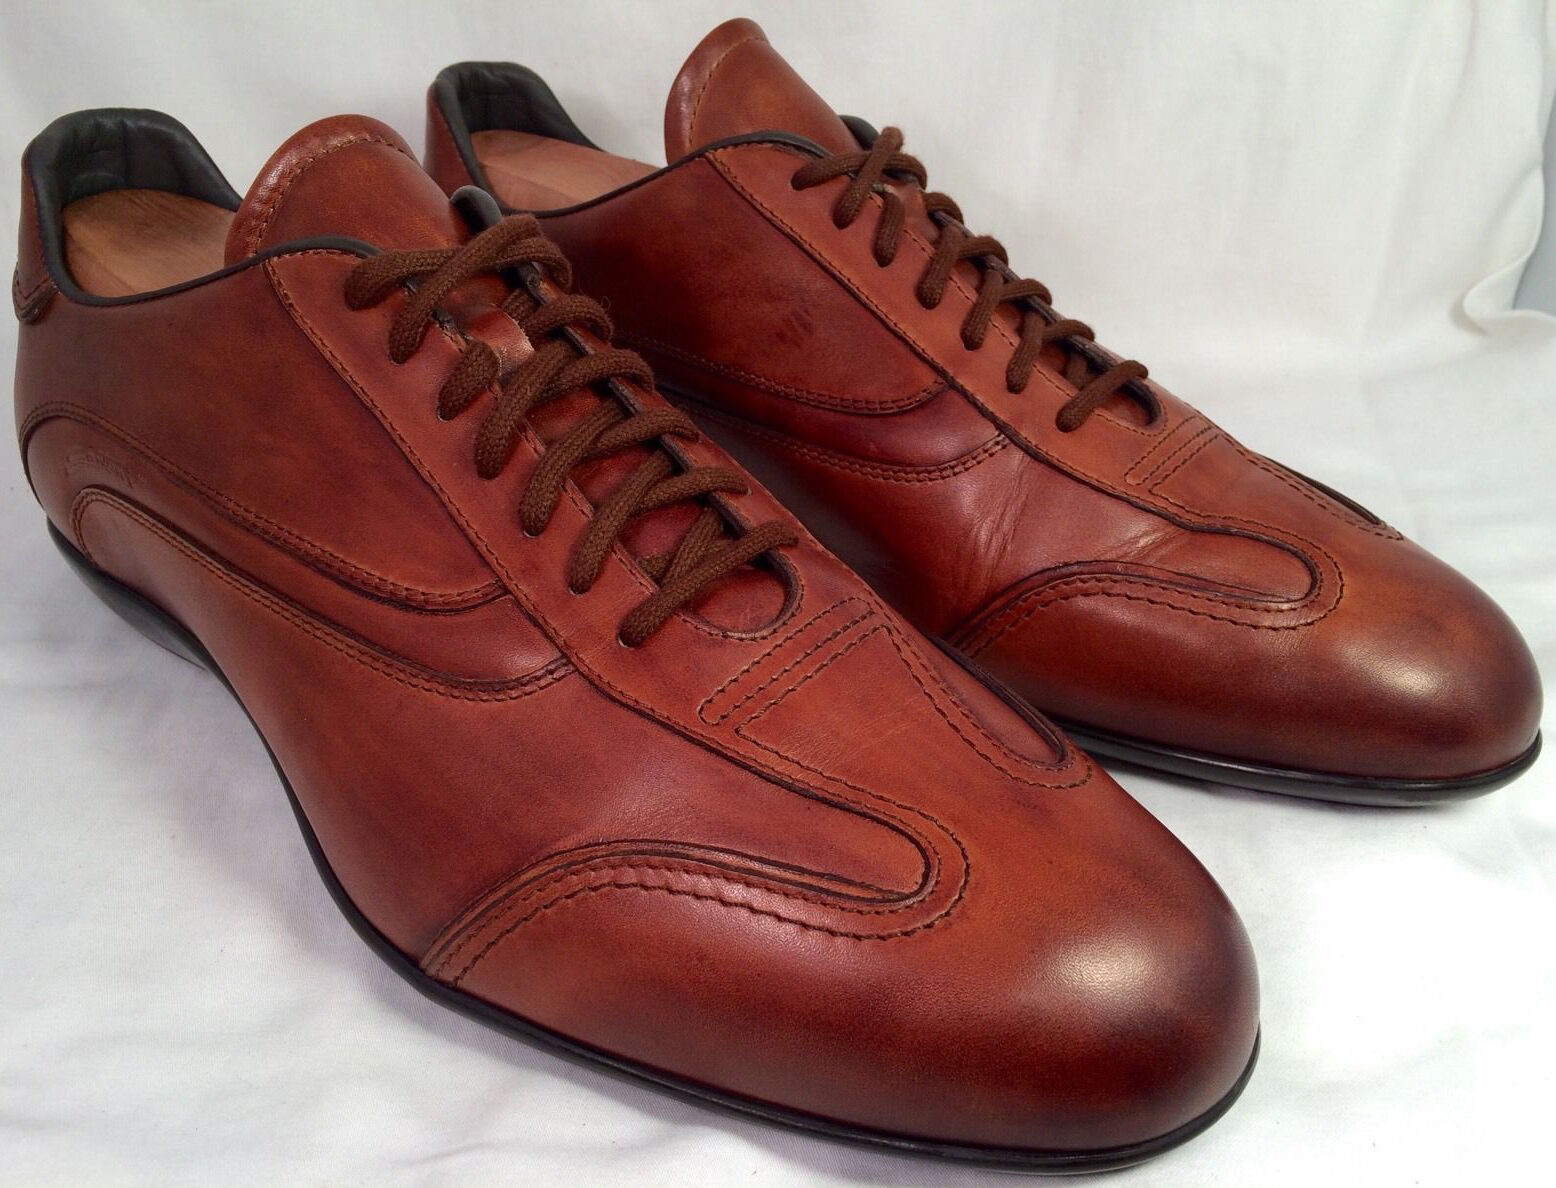 Top Italian Brands Shoes